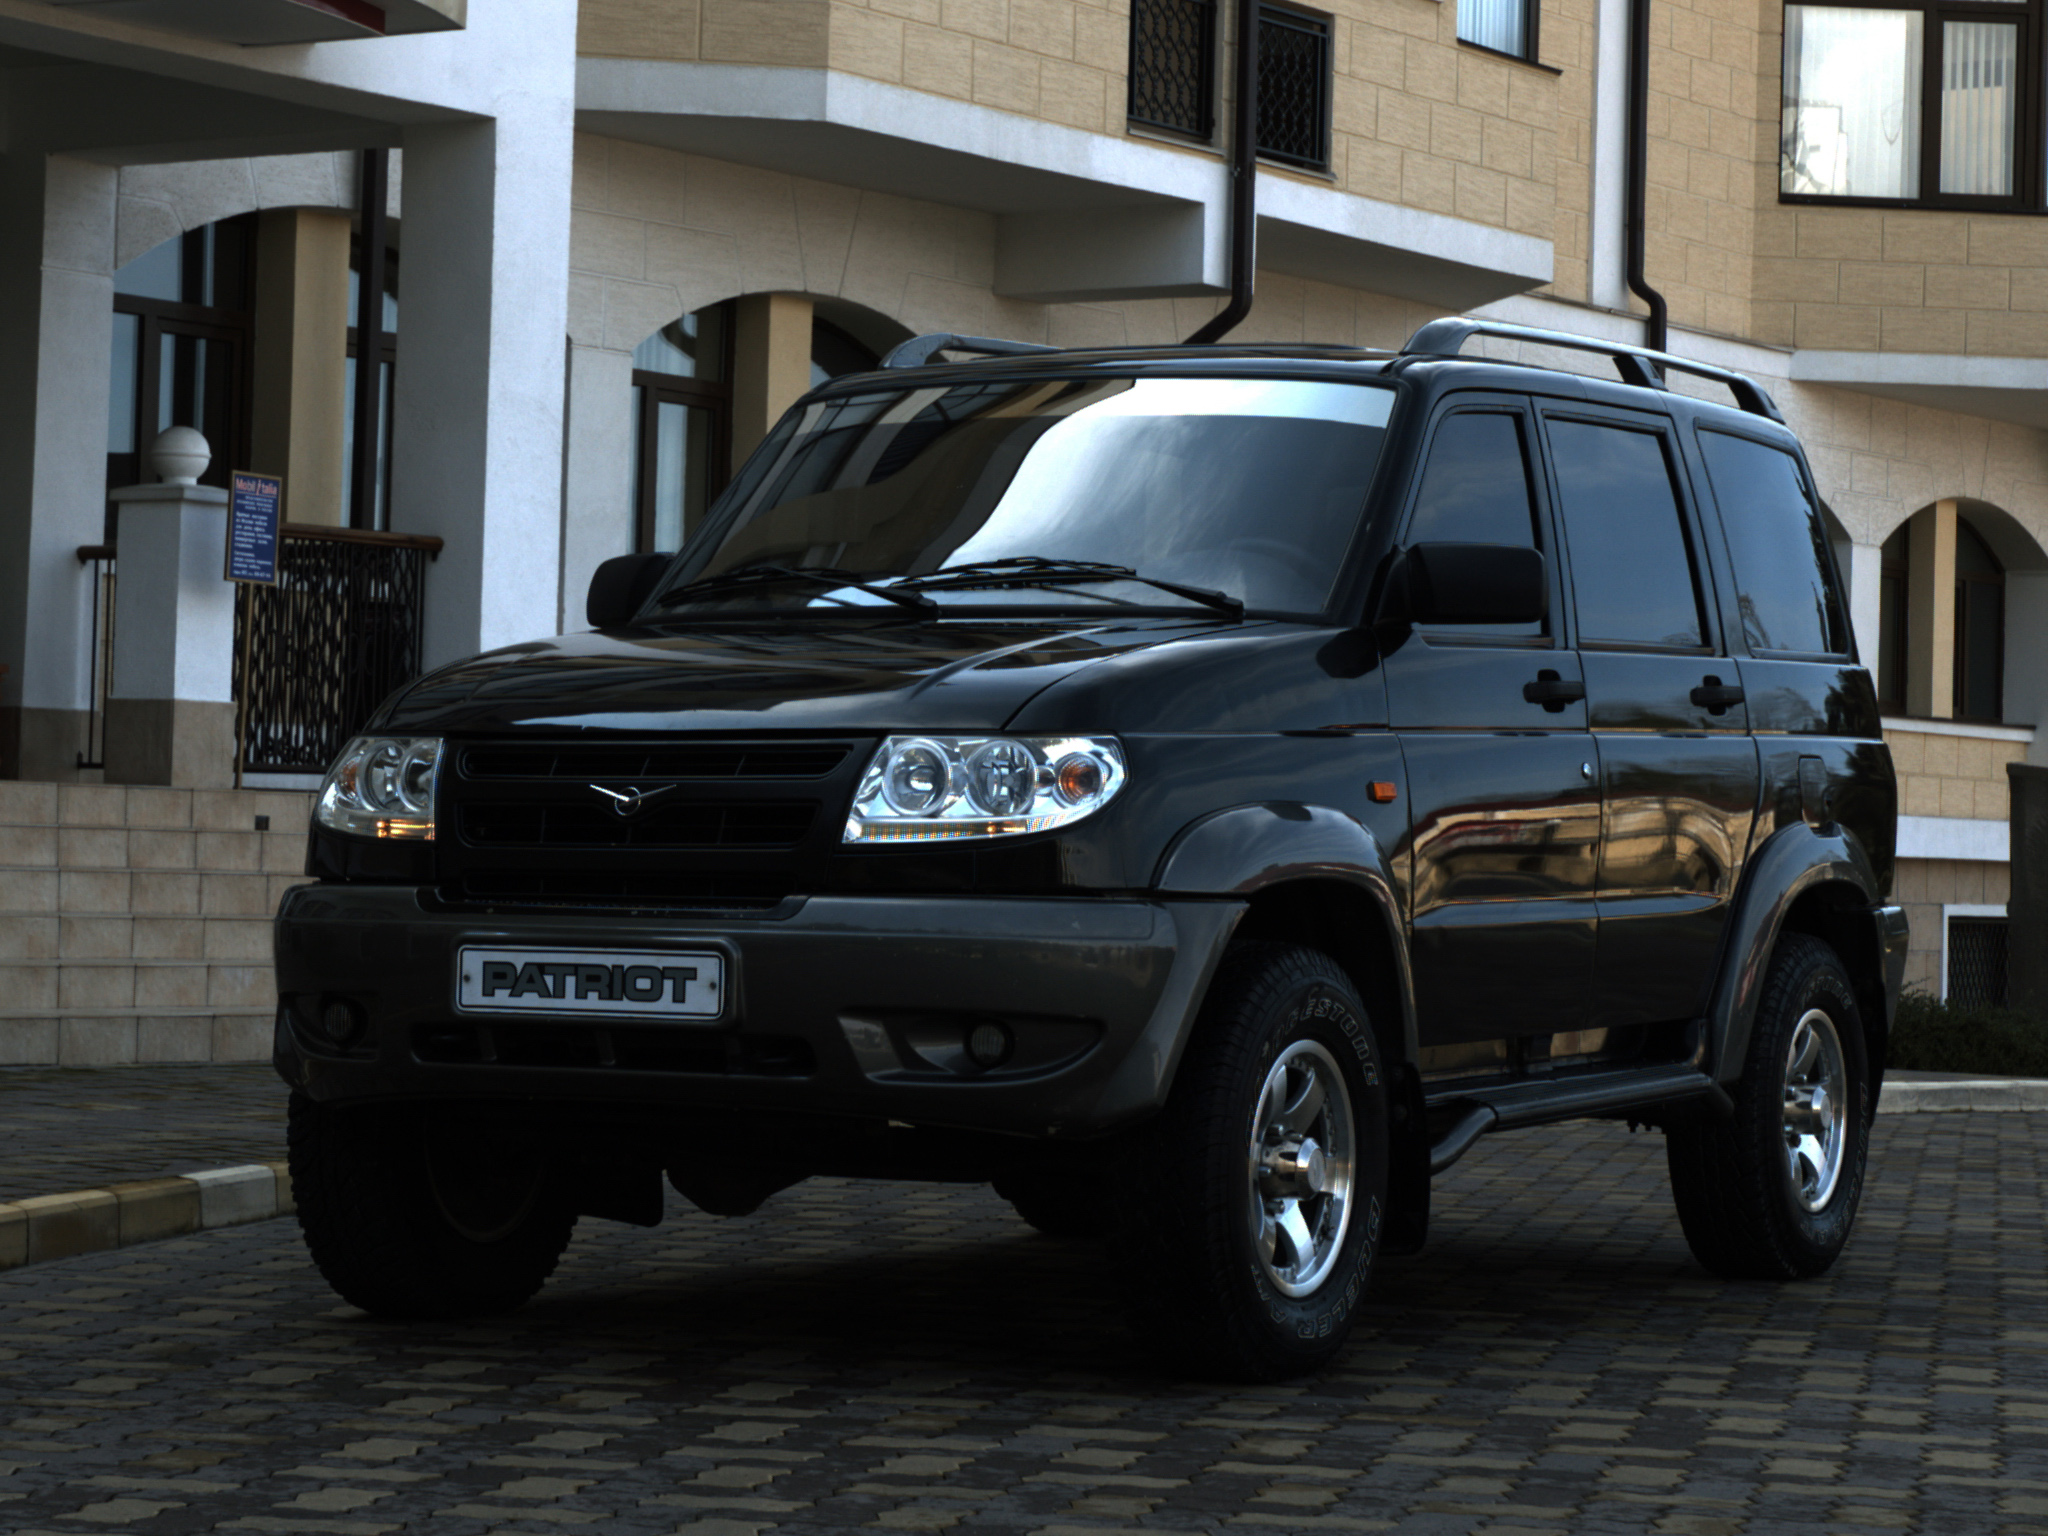 uaz patriot suv 2005. Black Bedroom Furniture Sets. Home Design Ideas